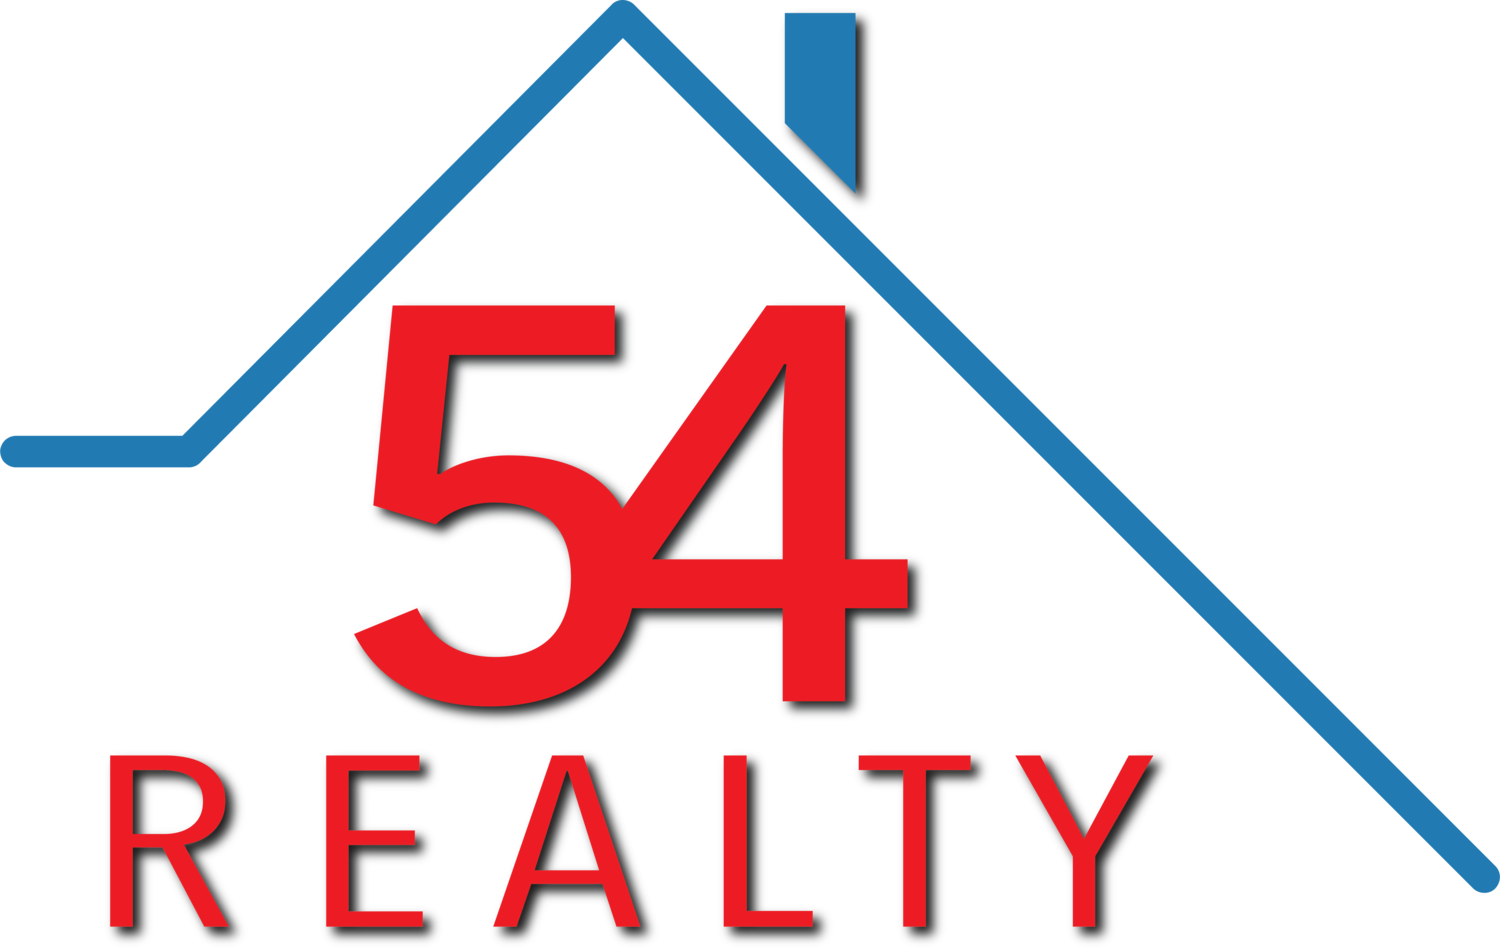 54 Realty